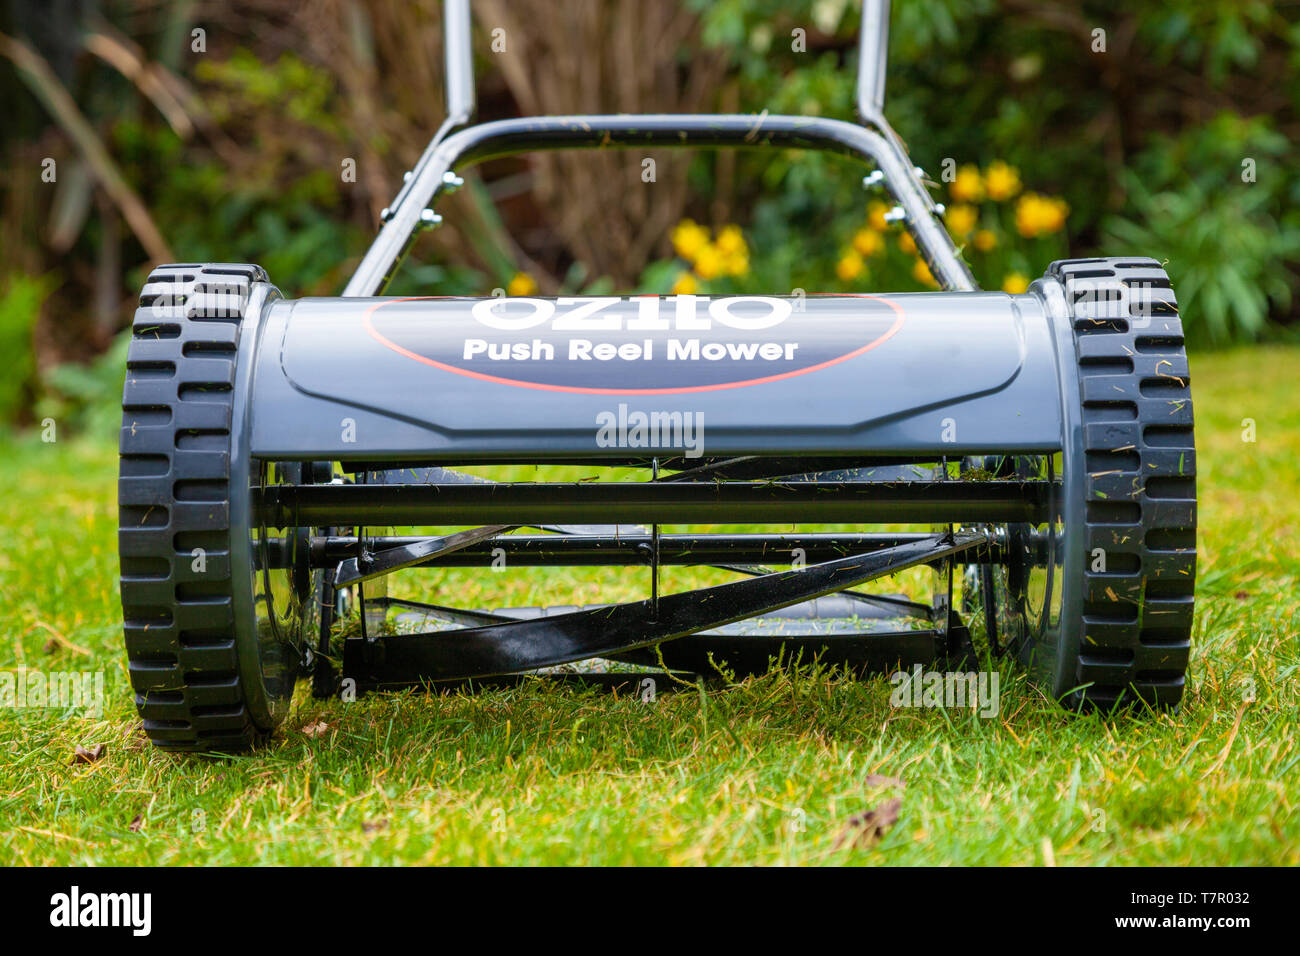 A push lawn mower photographed in a domestic garden on grass. - Stock Image